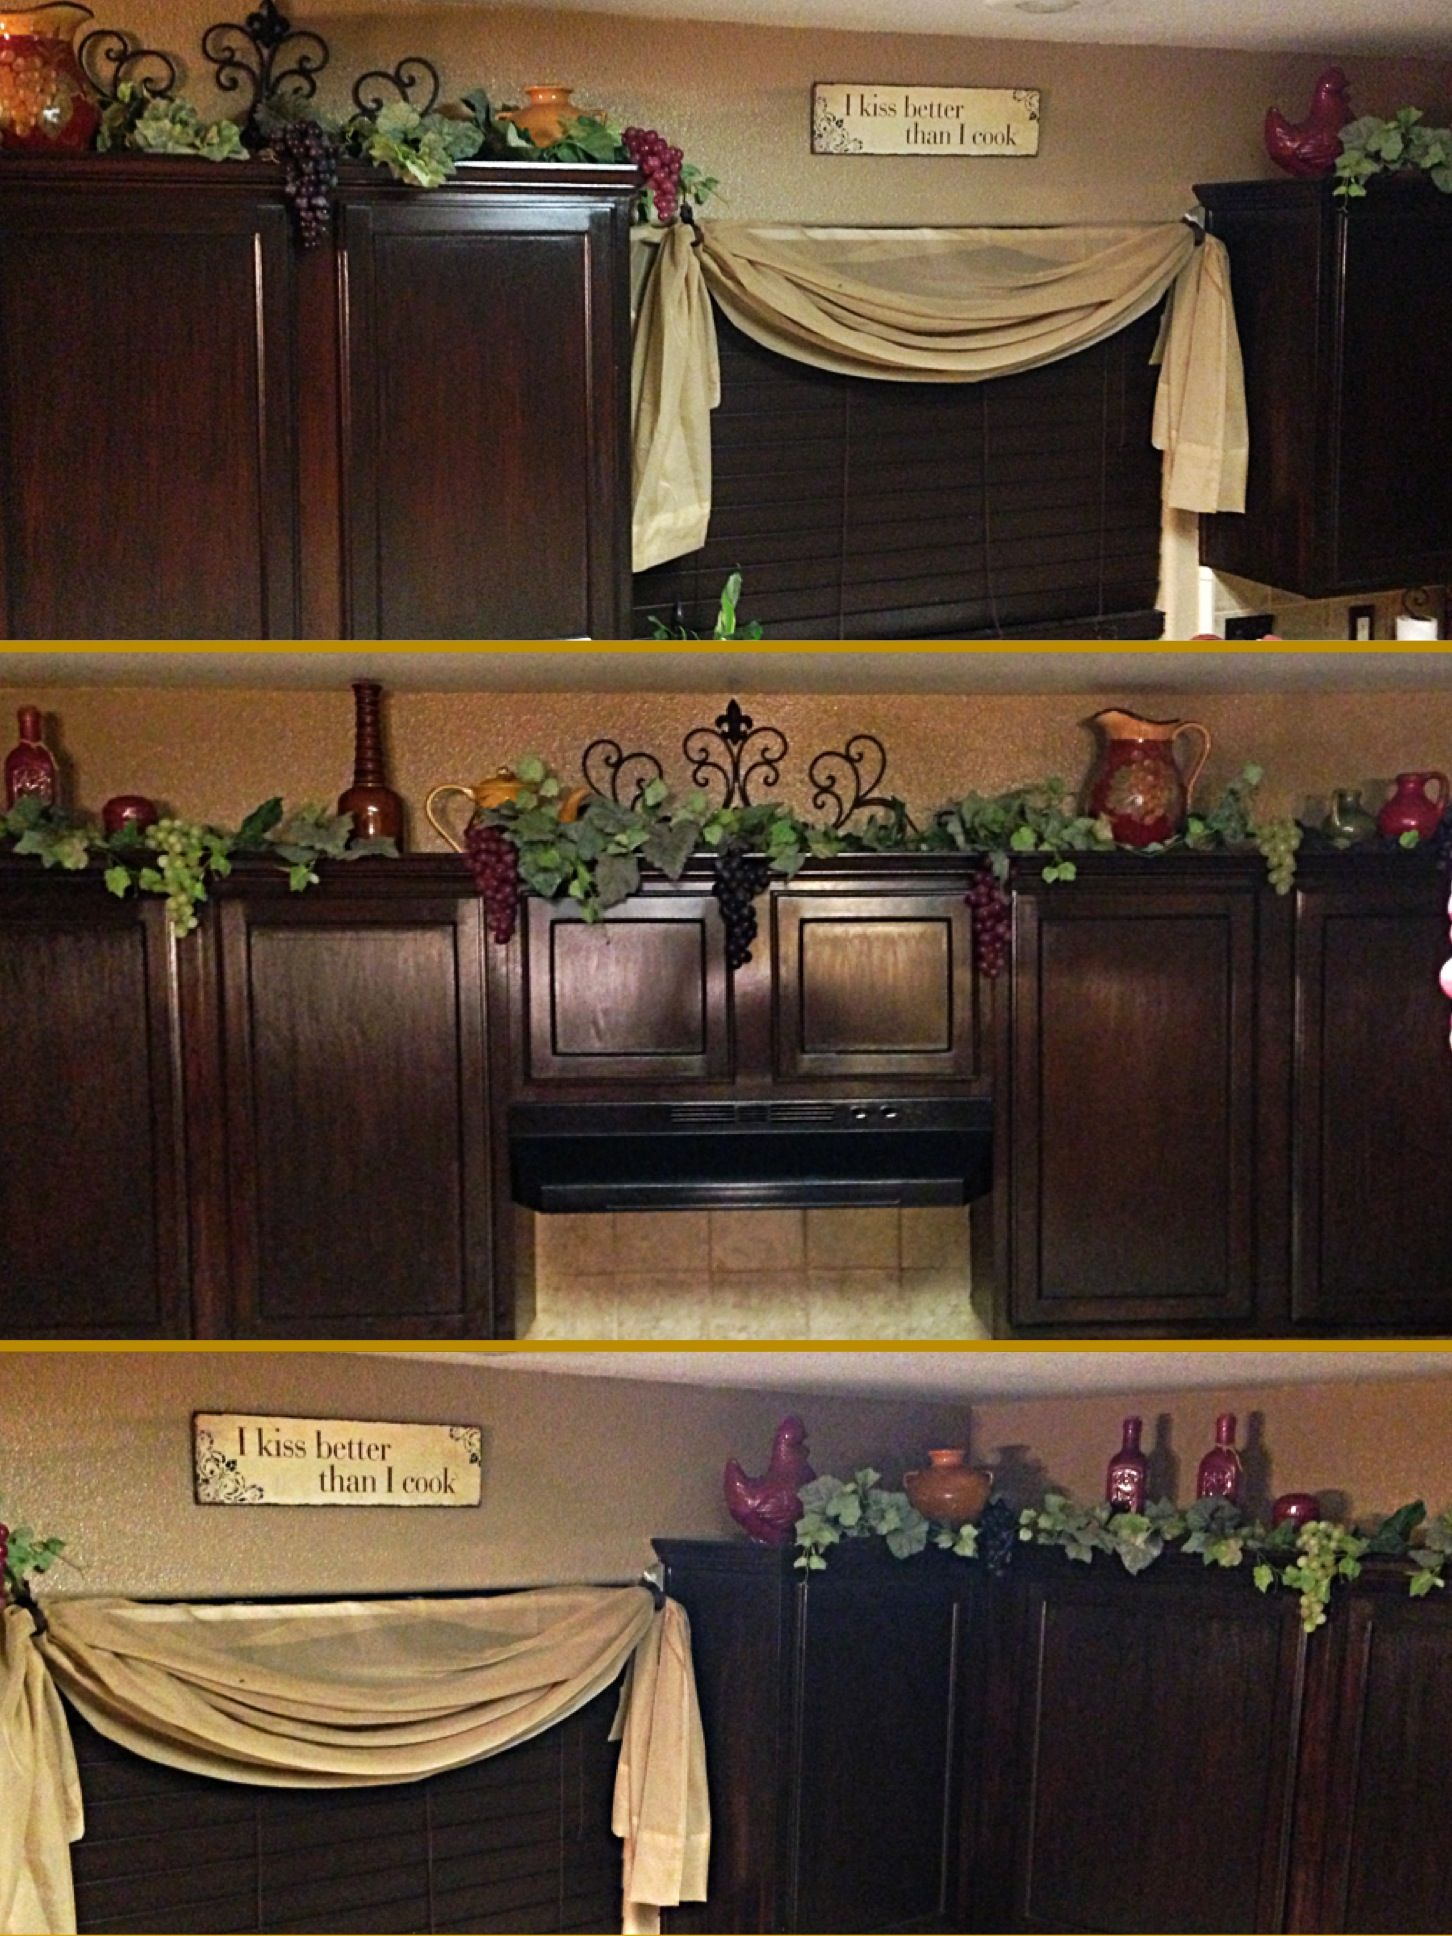 Vineyard Kitchen Decor Farmhouse Chairs On Top Cabinets Grapes Vines And